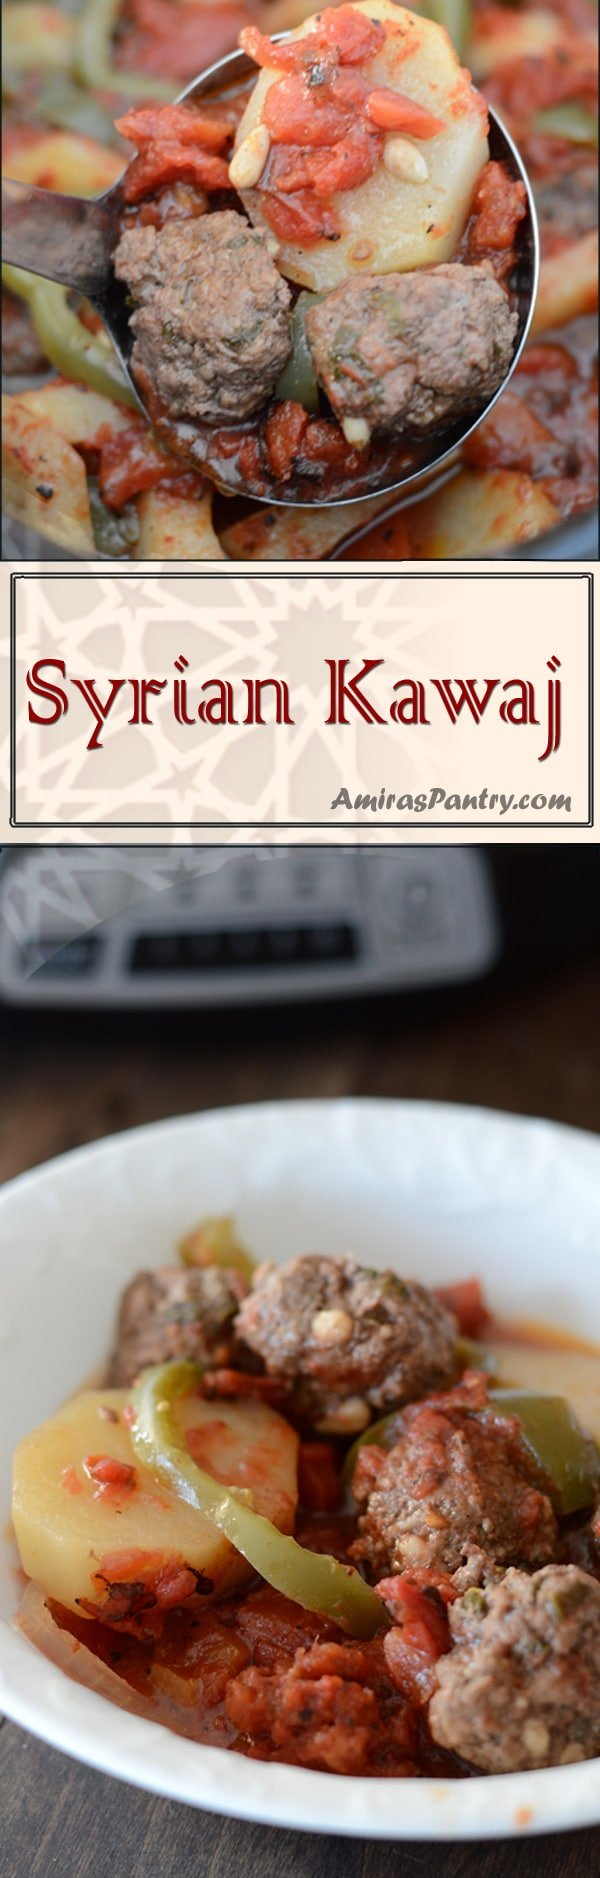 An infograph for Syrian Kawaj recipe